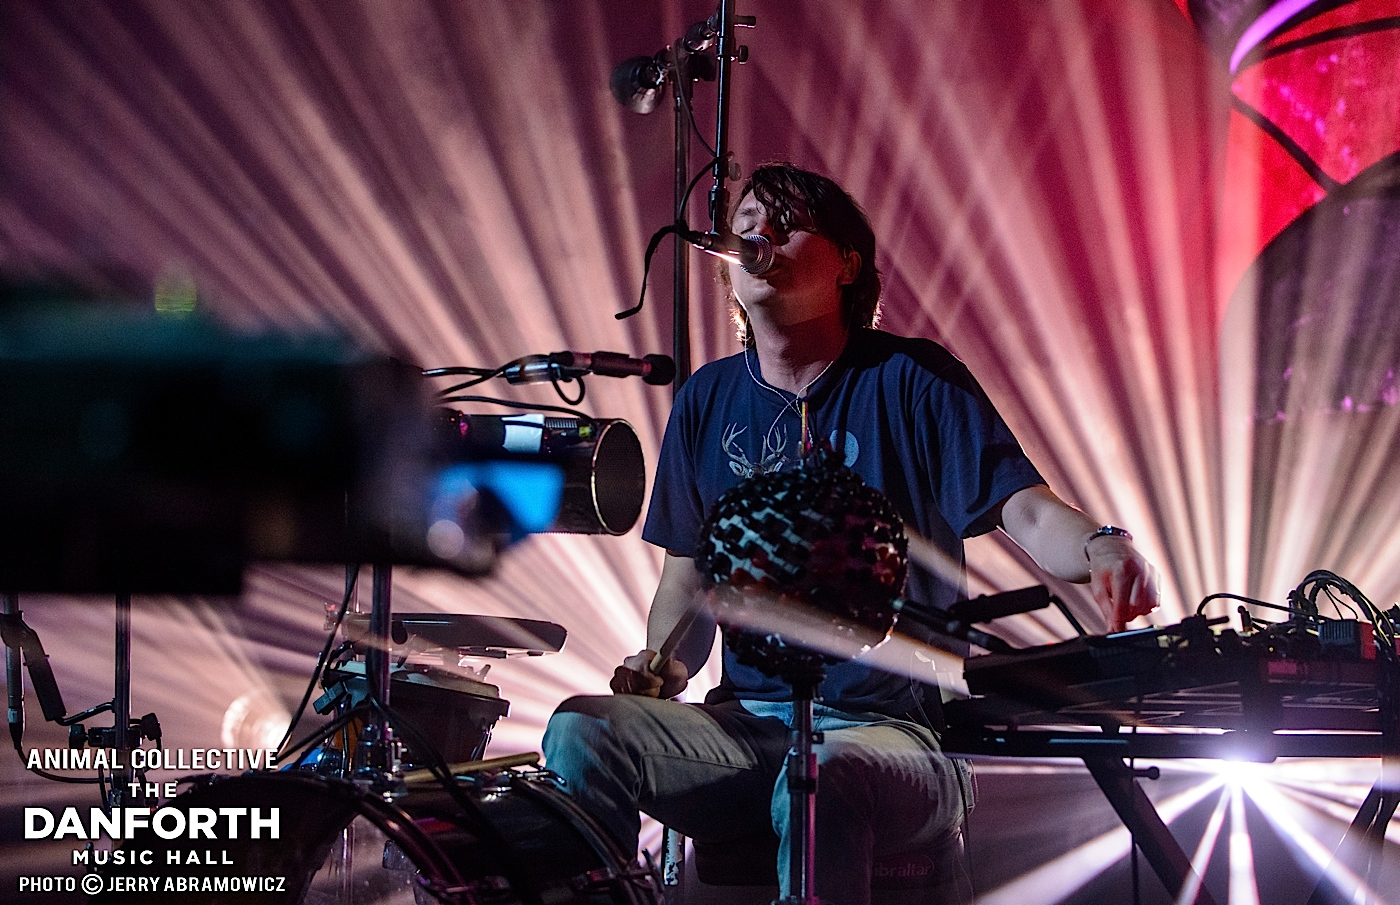 ANIMAL COLLECTIVE play a sold out show at The Danforth Music Hall Toronto.